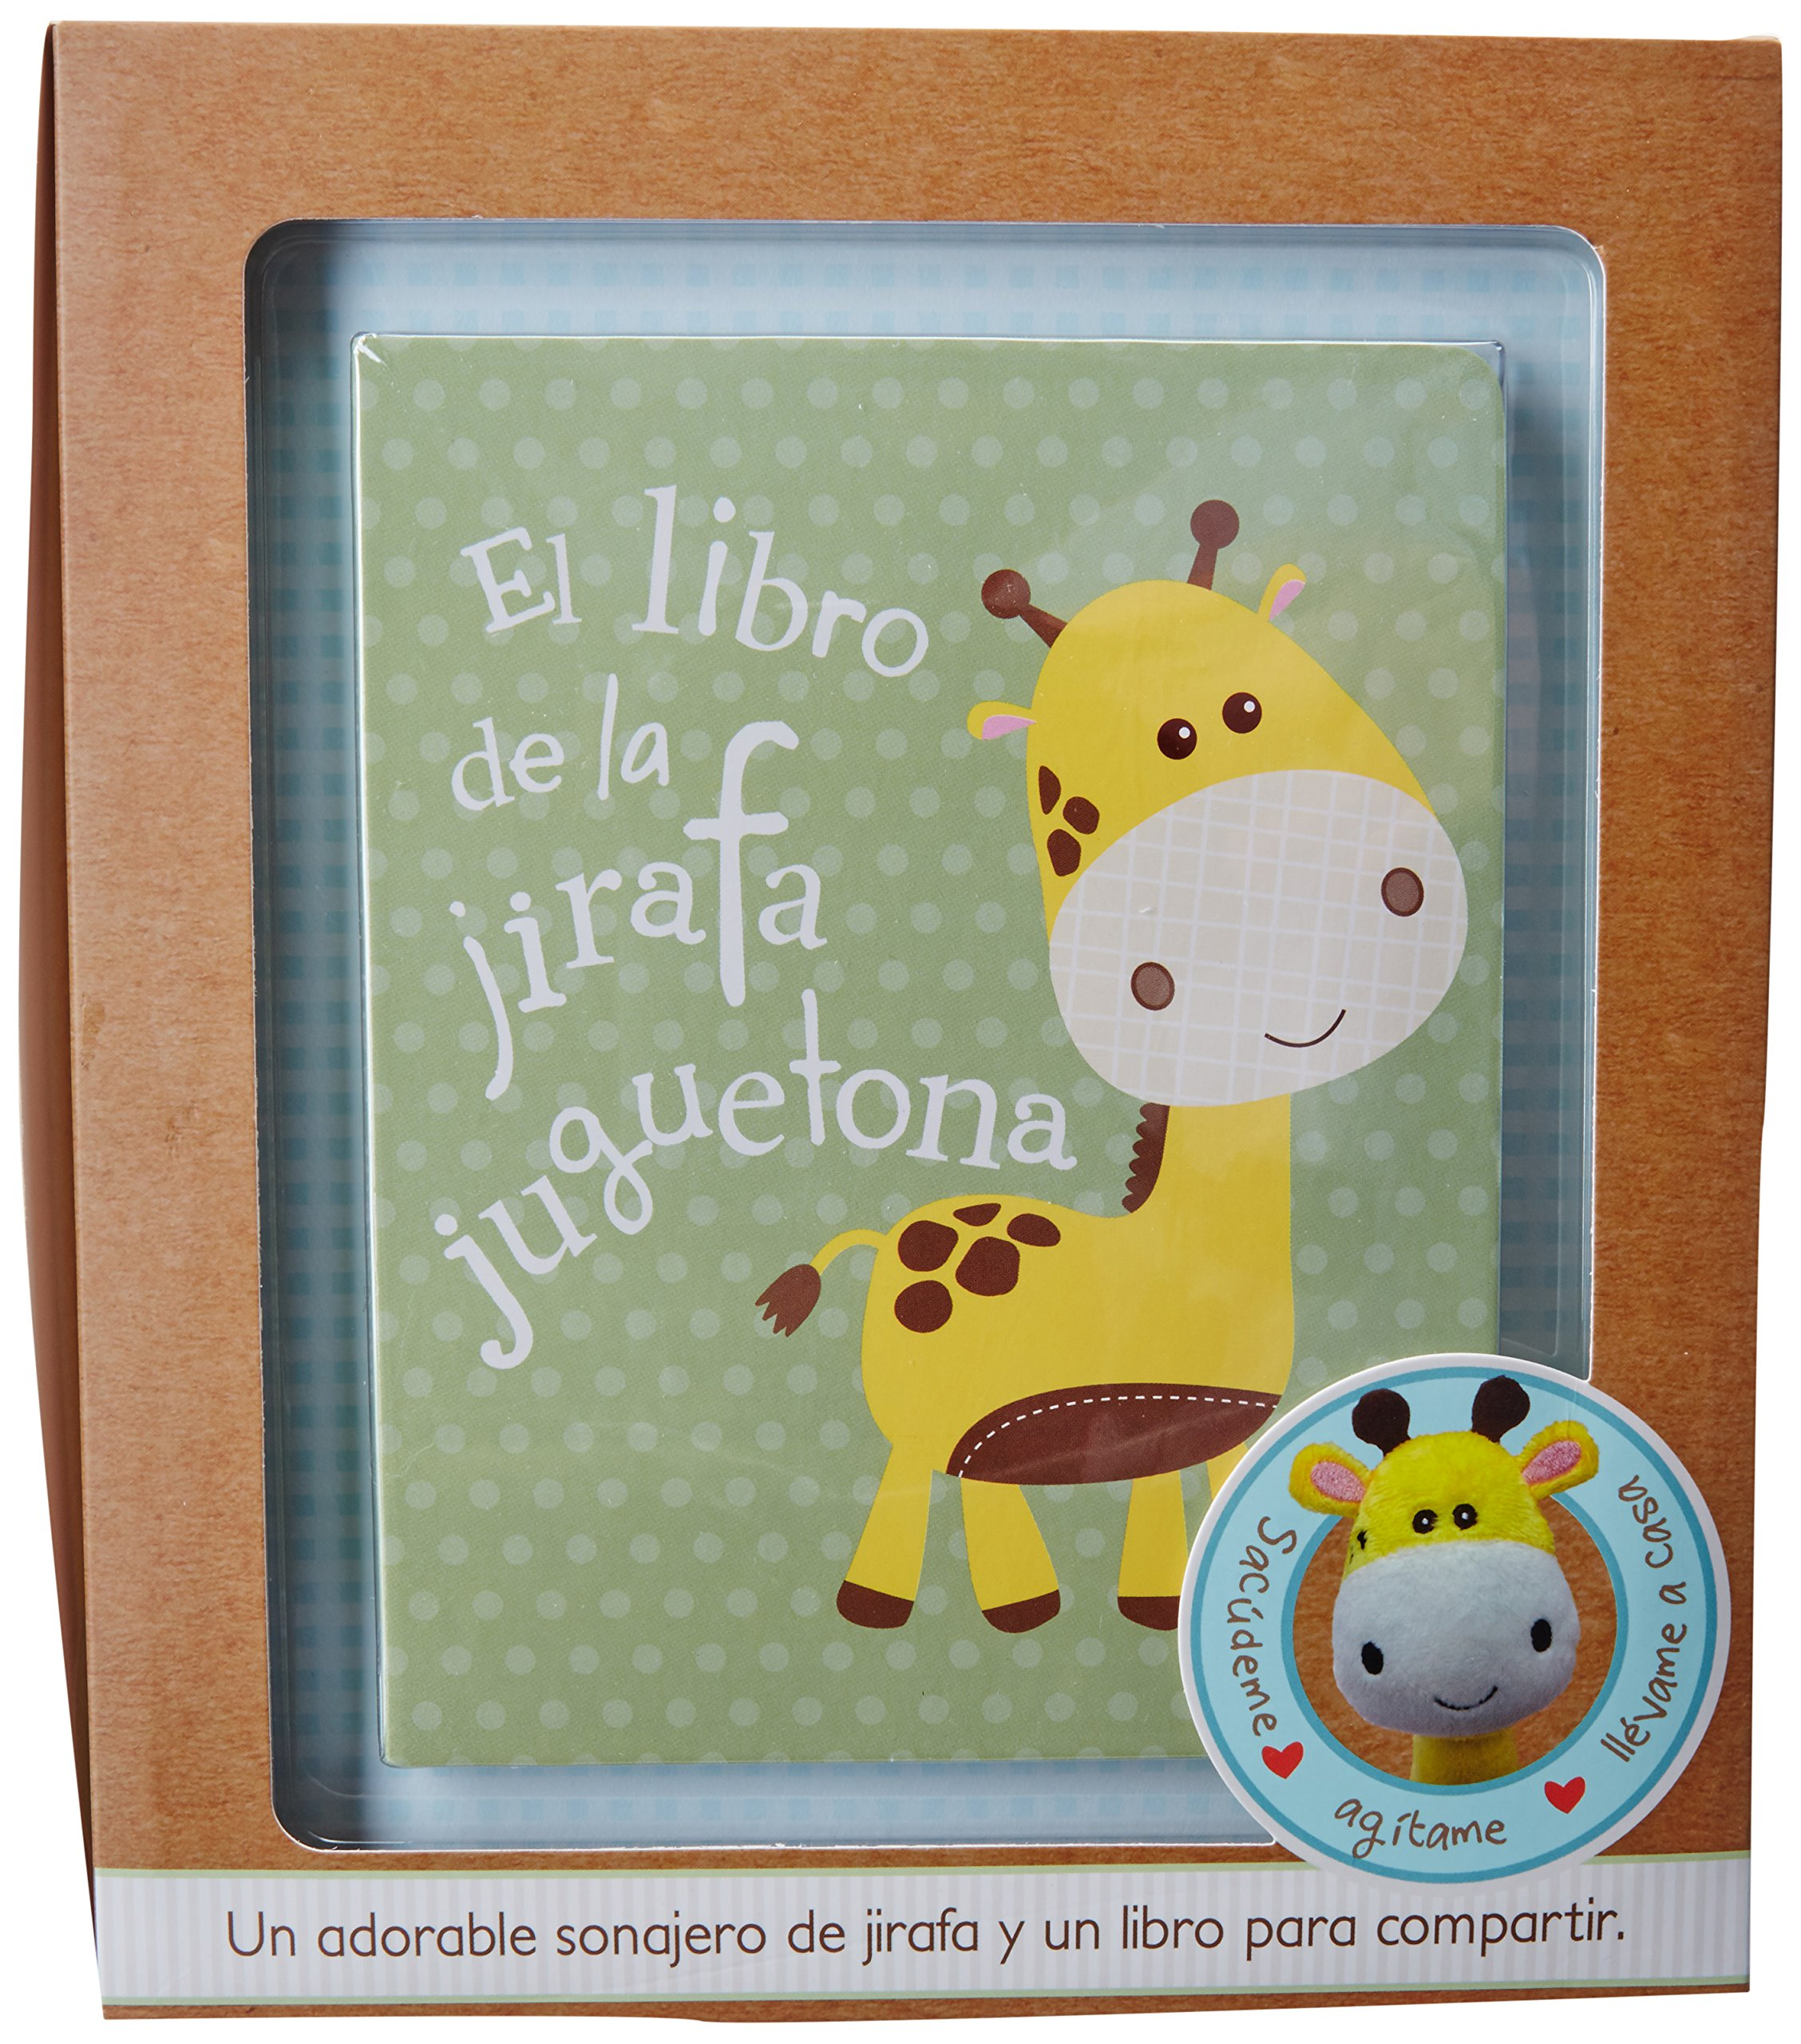 Jirafa Juguetona - Libro y sonajero de puluche (Little Learners) (Spanish Edition): Parragon Books: 9781472349842: Amazon.com: Books